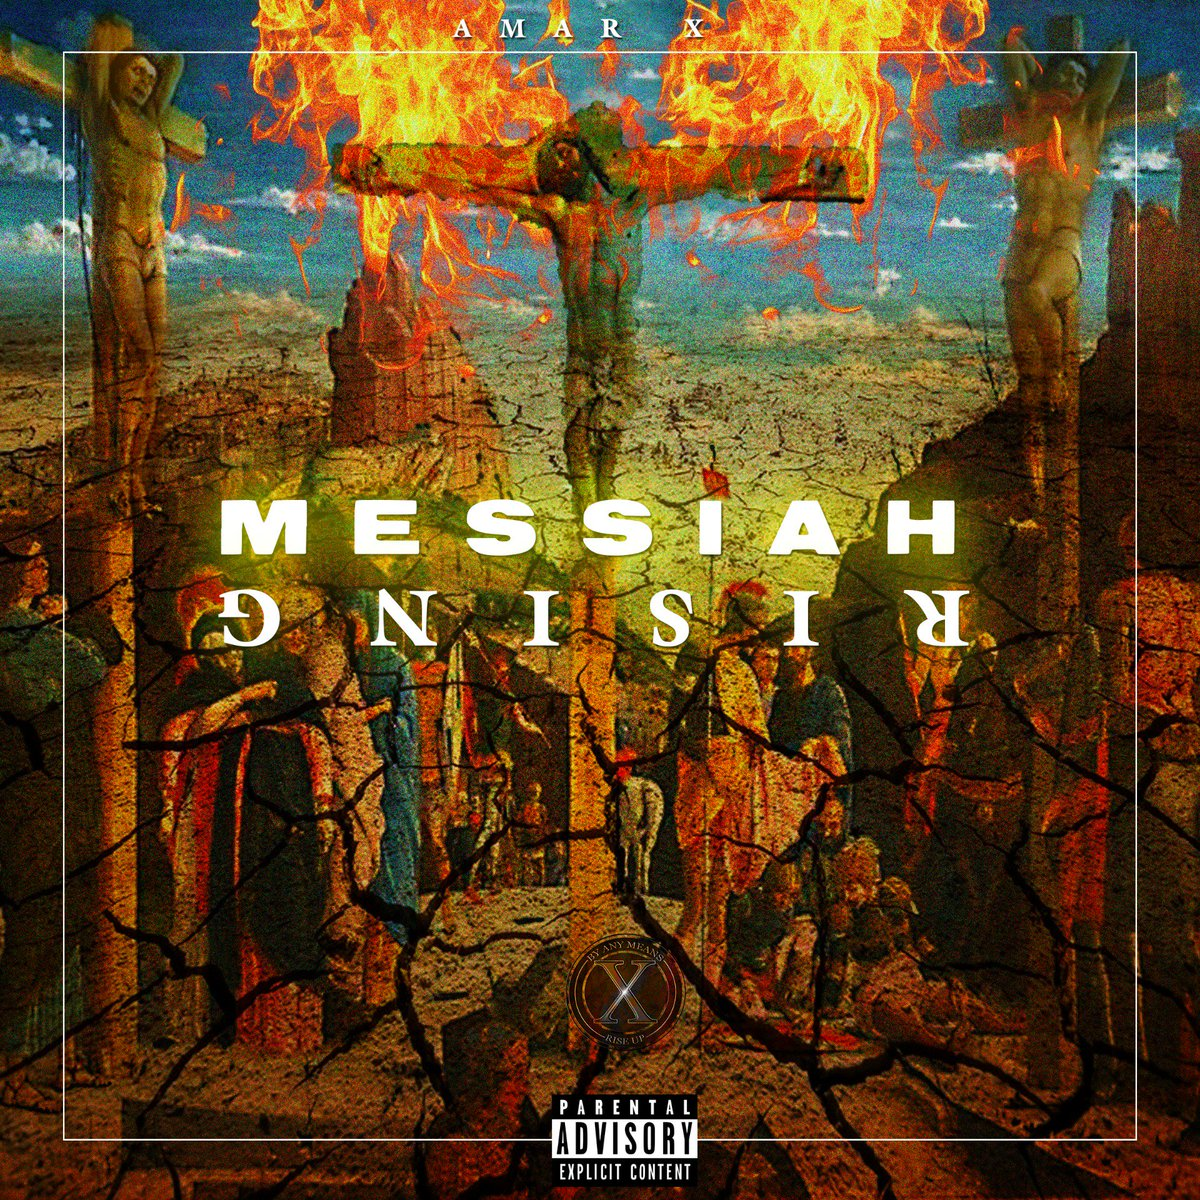 &quot;Messiah Rising&quot; Is Out Now! Go Download And Stream That. Bringin Real Rap With A Message Back To Life. #Support  https:// spinrilla.com/mixtapes/amar- x-messiah-rising &nbsp; … <br>http://pic.twitter.com/BupjMSHz3N